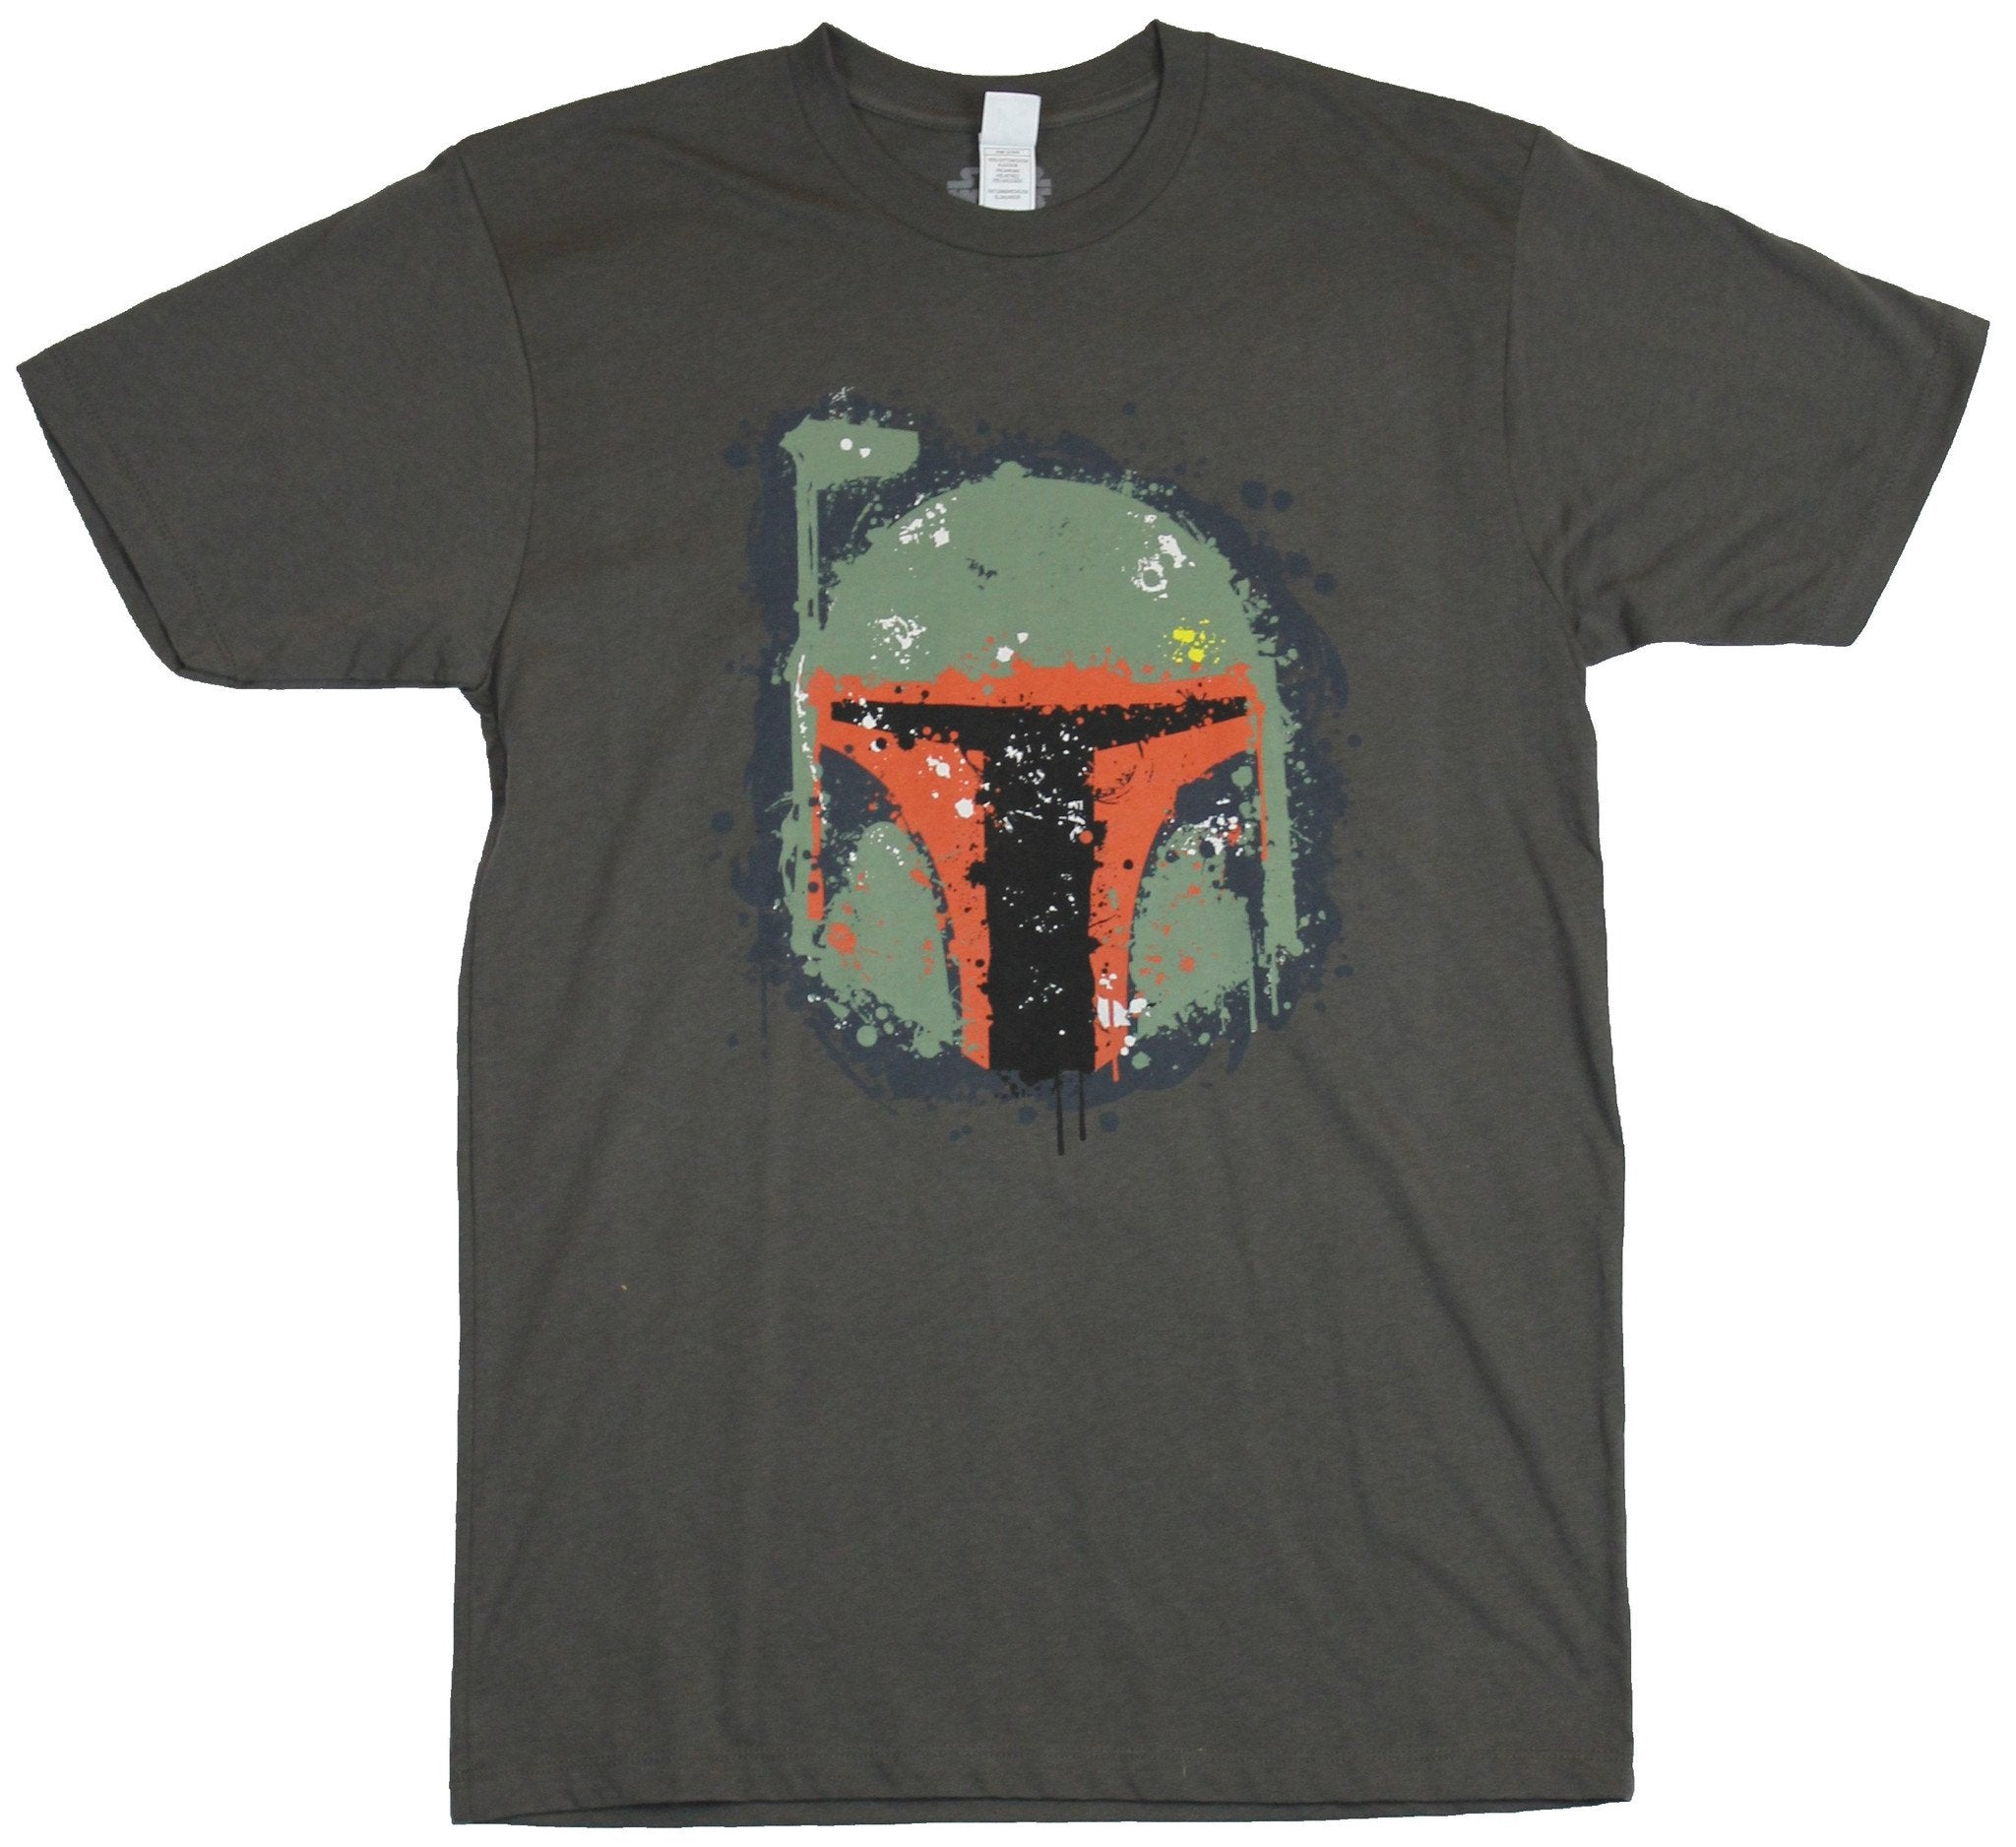 Star Wars Mens T-Shirt - Boba Fett Spalttery Green Red Helmet Image